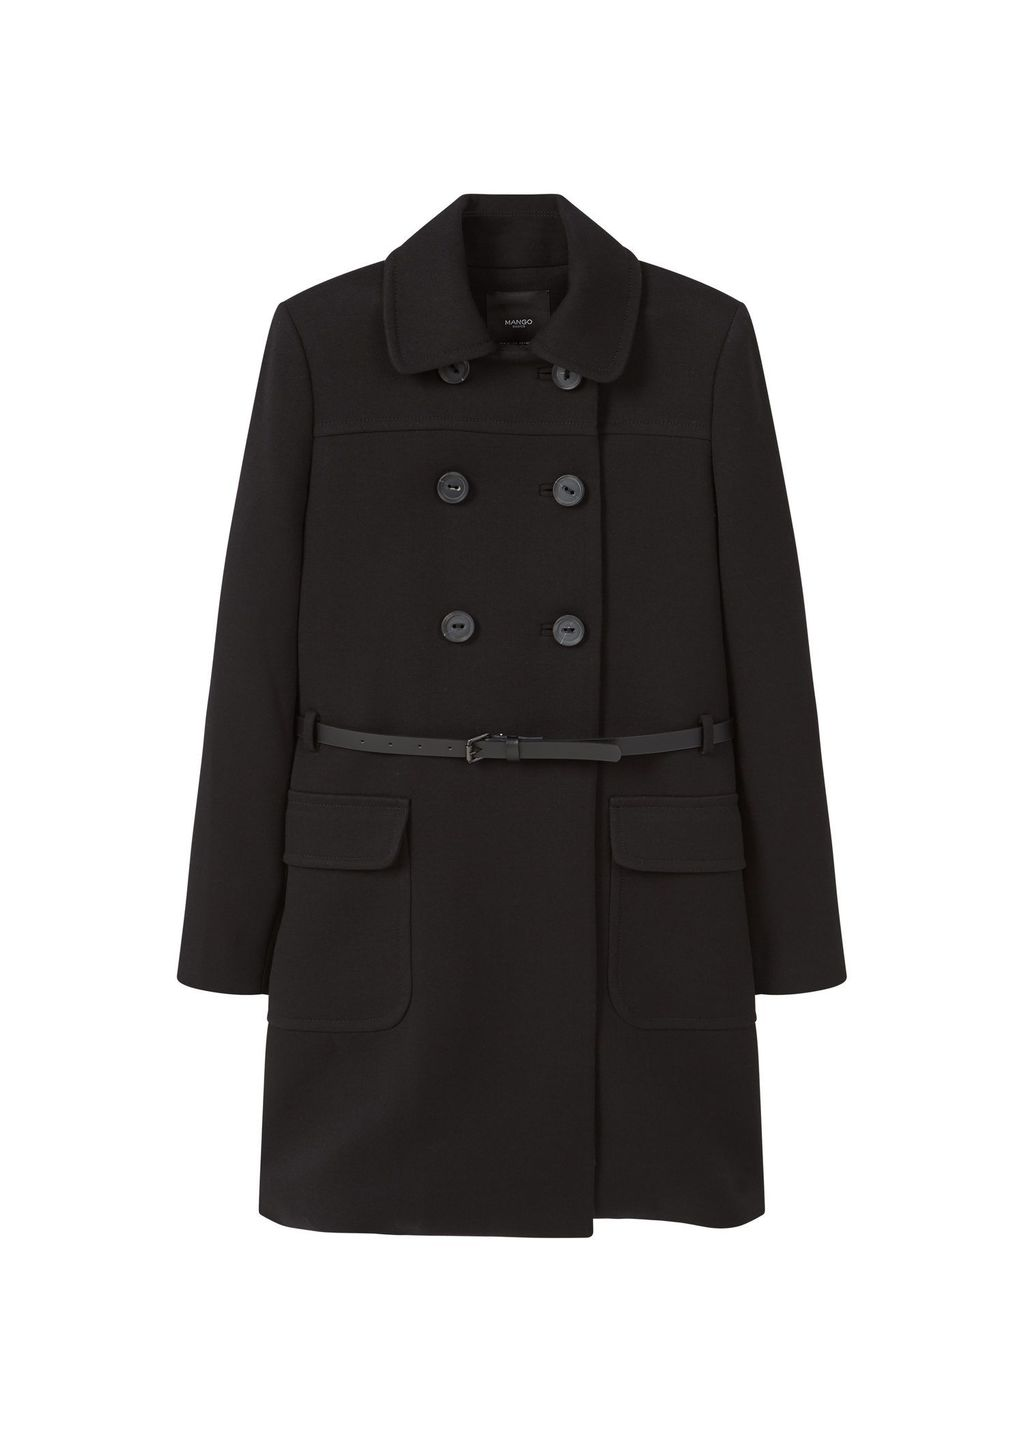 Double Breasted Coat, Black - pattern: plain; length: below the bottom; style: double breasted; predominant colour: black; occasions: casual; fit: tailored/fitted; fibres: polyester/polyamide - stretch; collar: shirt collar/peter pan/zip with opening; waist detail: belted waist/tie at waist/drawstring; sleeve length: long sleeve; sleeve style: standard; collar break: high; pattern type: fabric; texture group: other - light to midweight; wardrobe: basic; season: a/w 2016